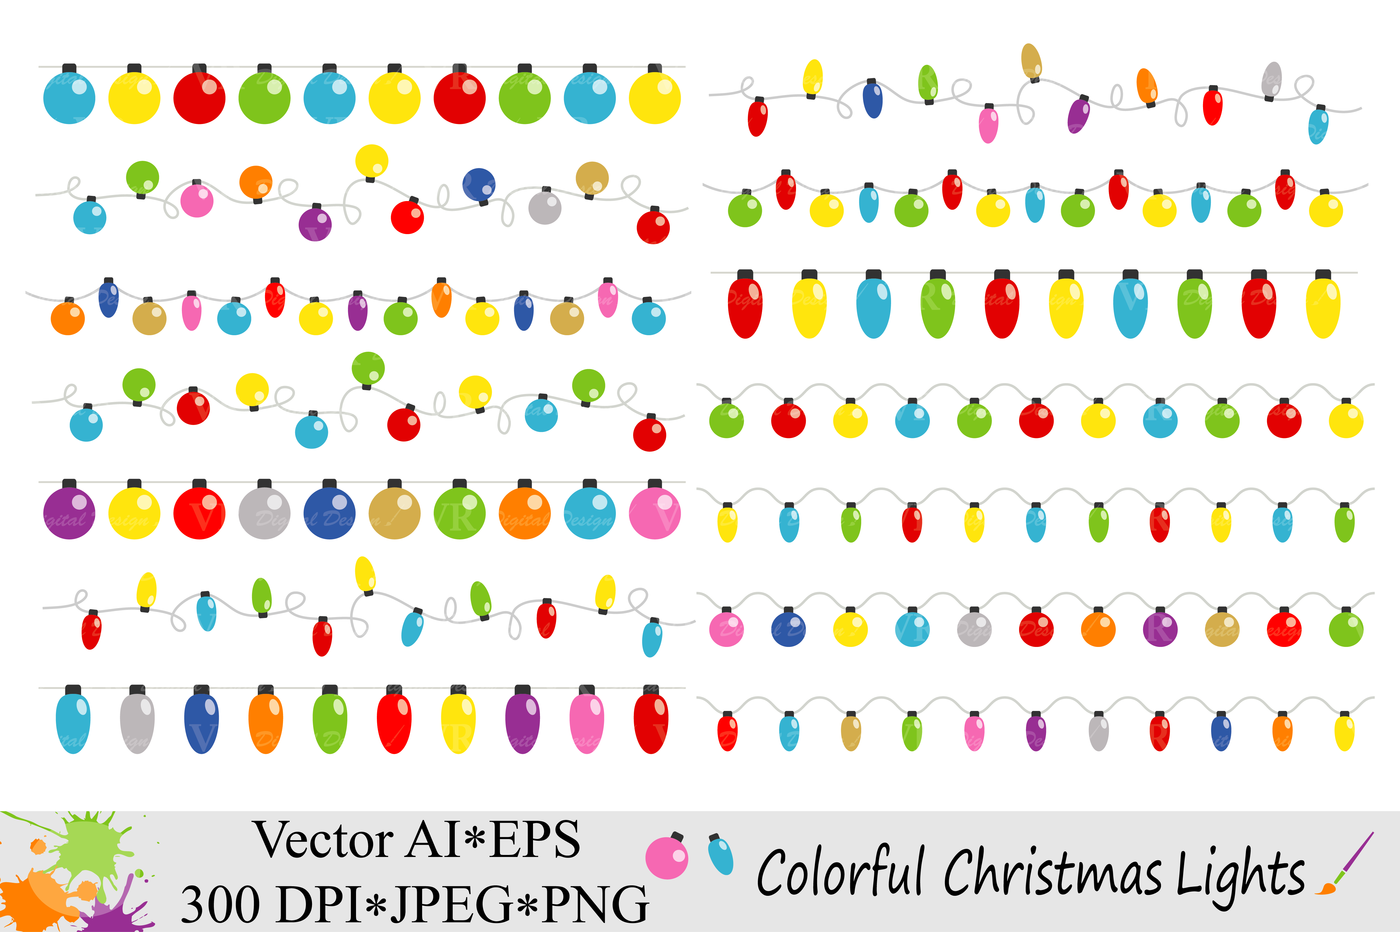 Colorful Christmas String Lights Clipart Vector By Vr Digital